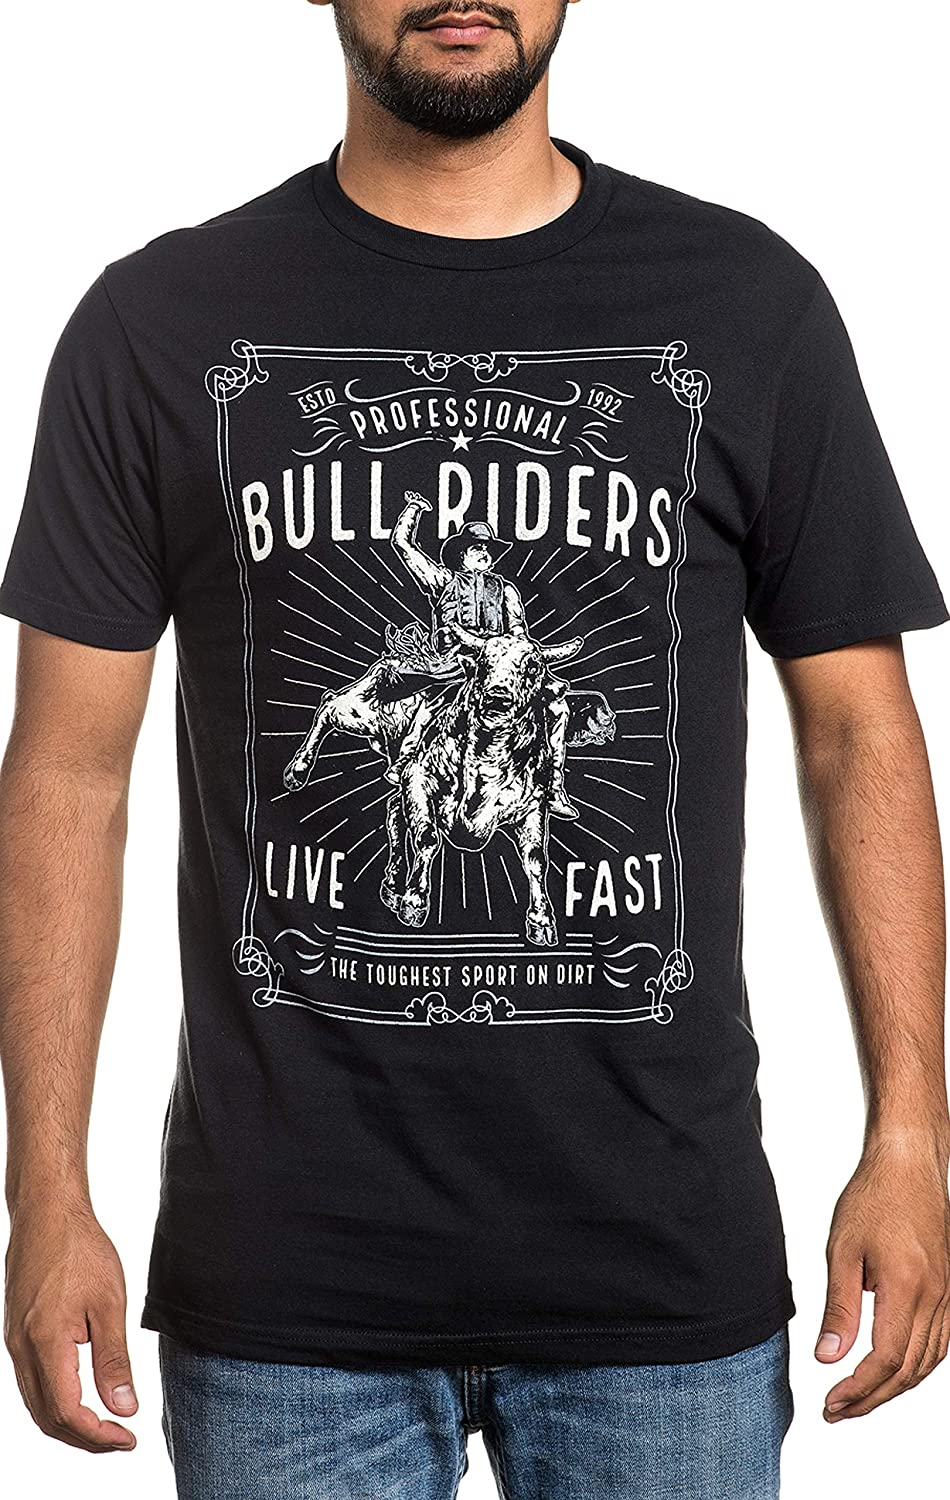 B07HR59BCZ Affliction PBR Professional Bull Riders Live Fast Short Sleeve Casual Graphic Fashion T-shirt For Men 91BYD2BpgDuL